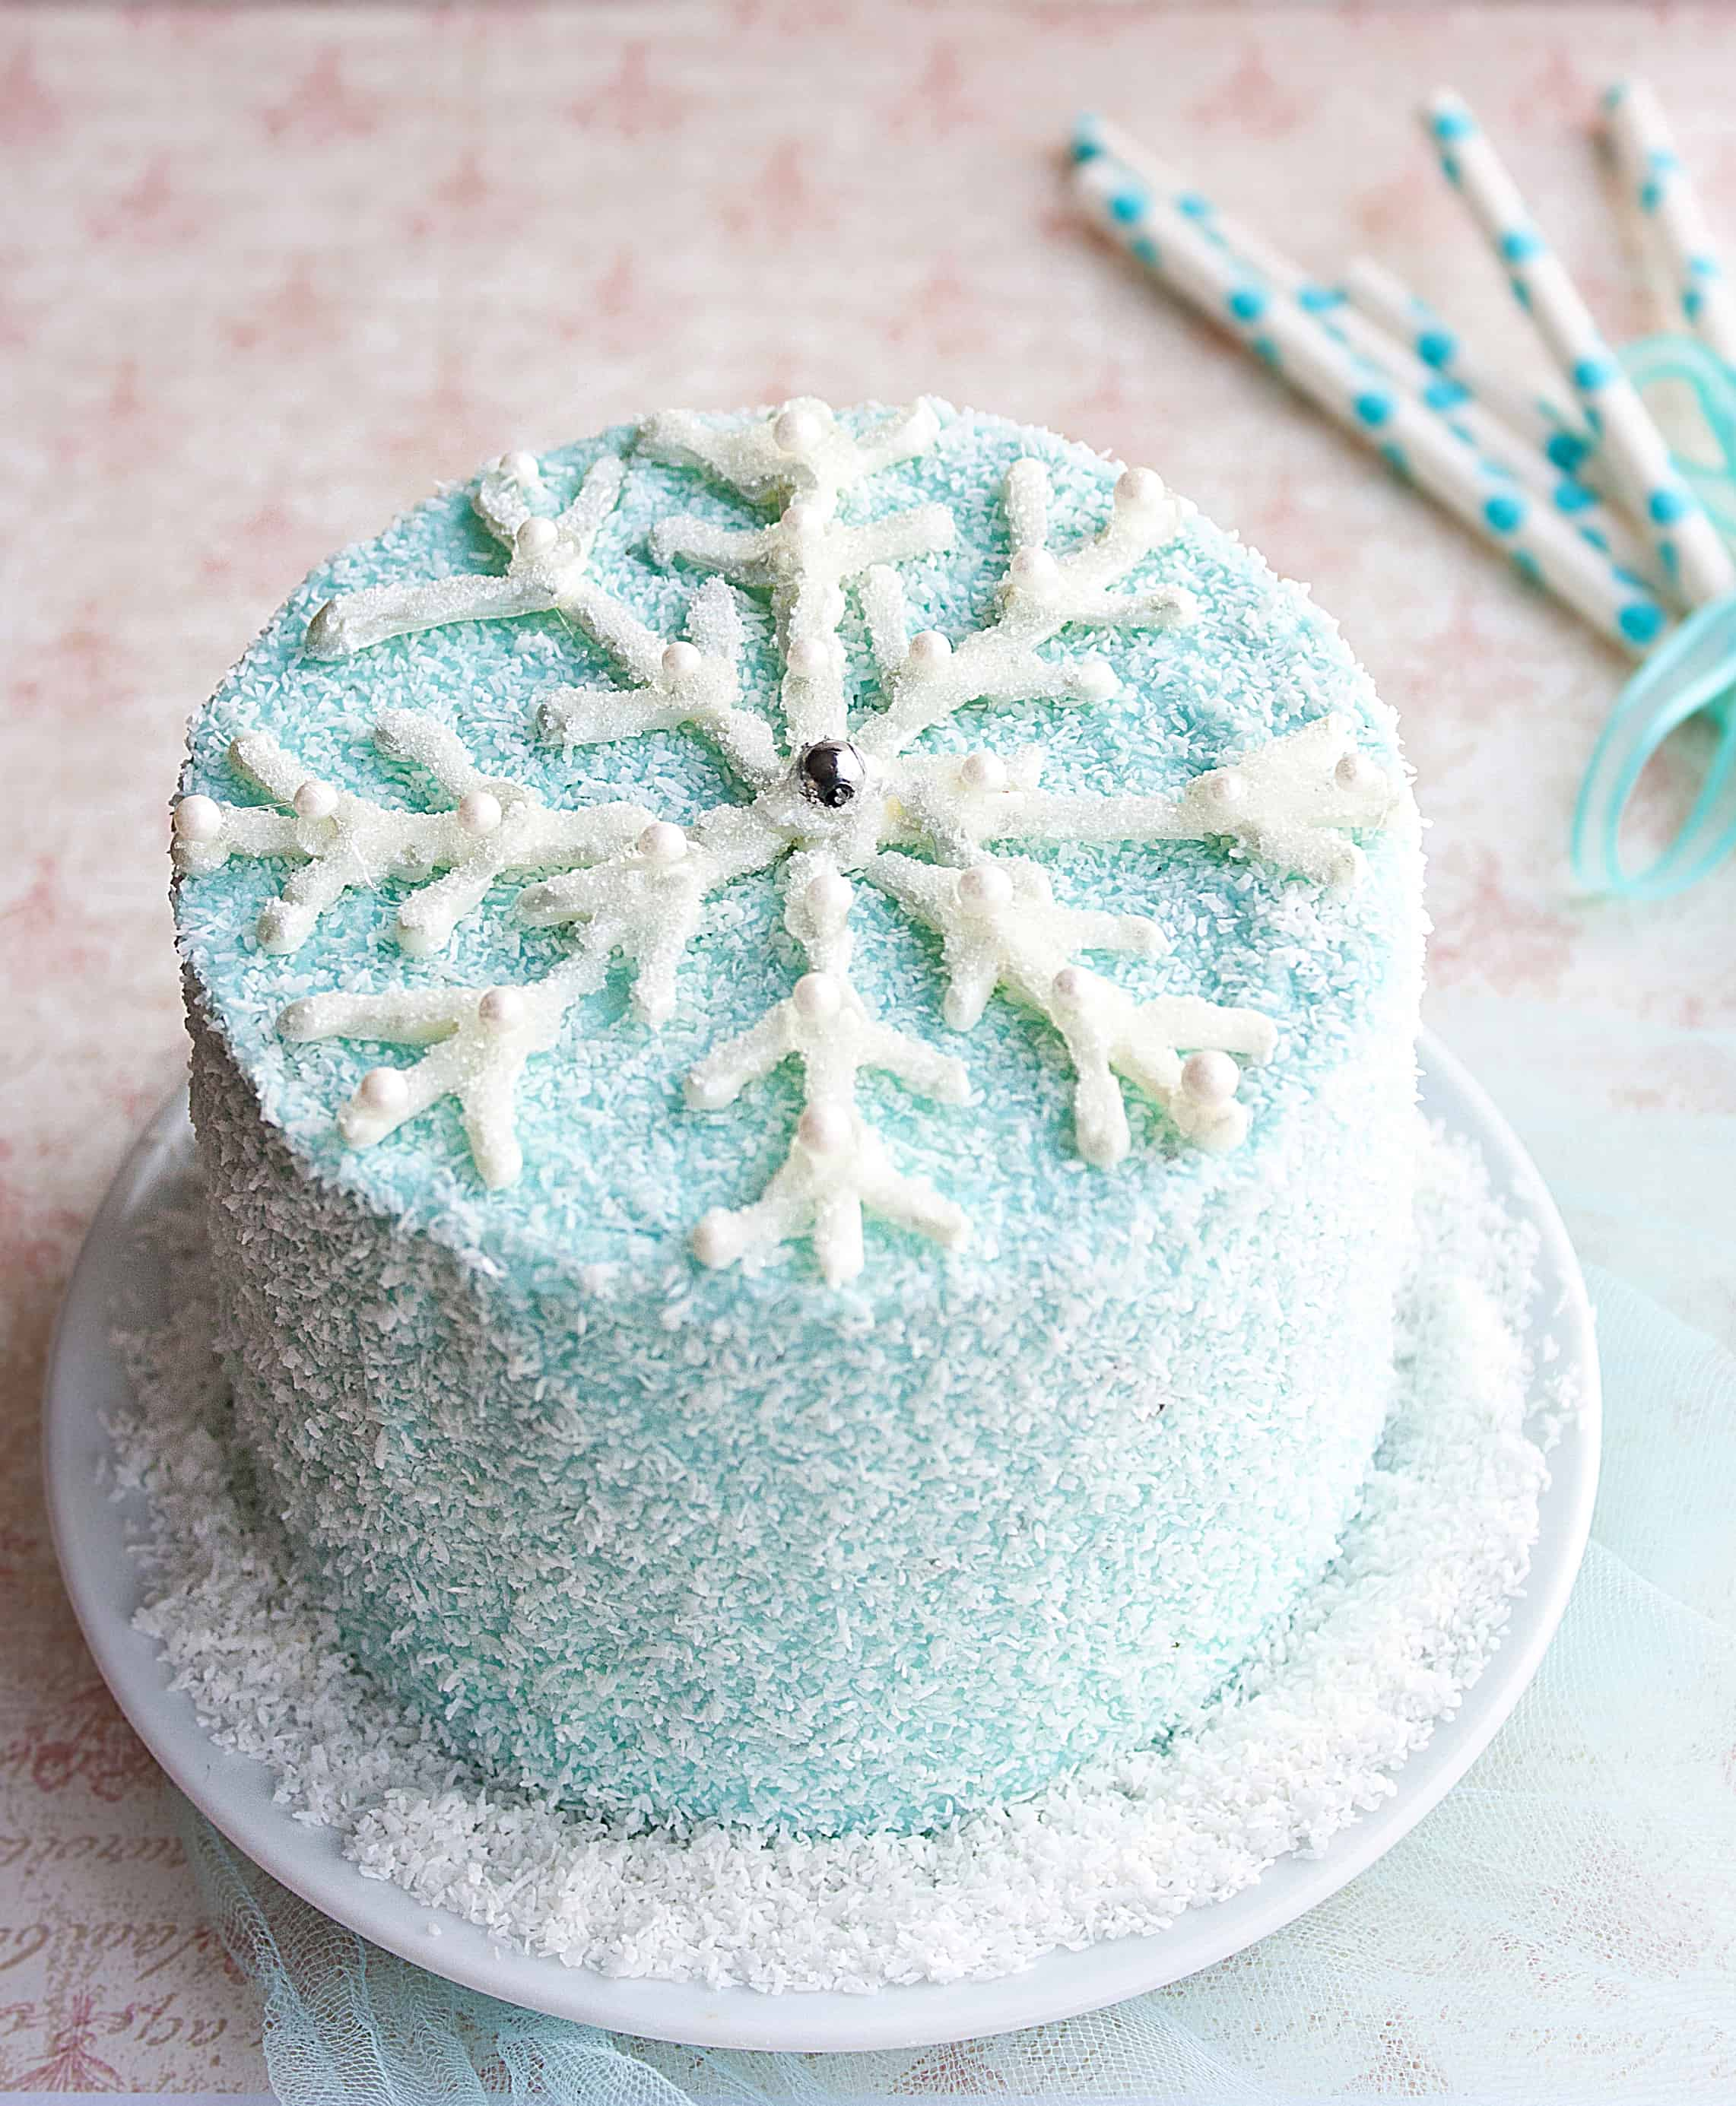 Edible Snowflake Cake Decorations